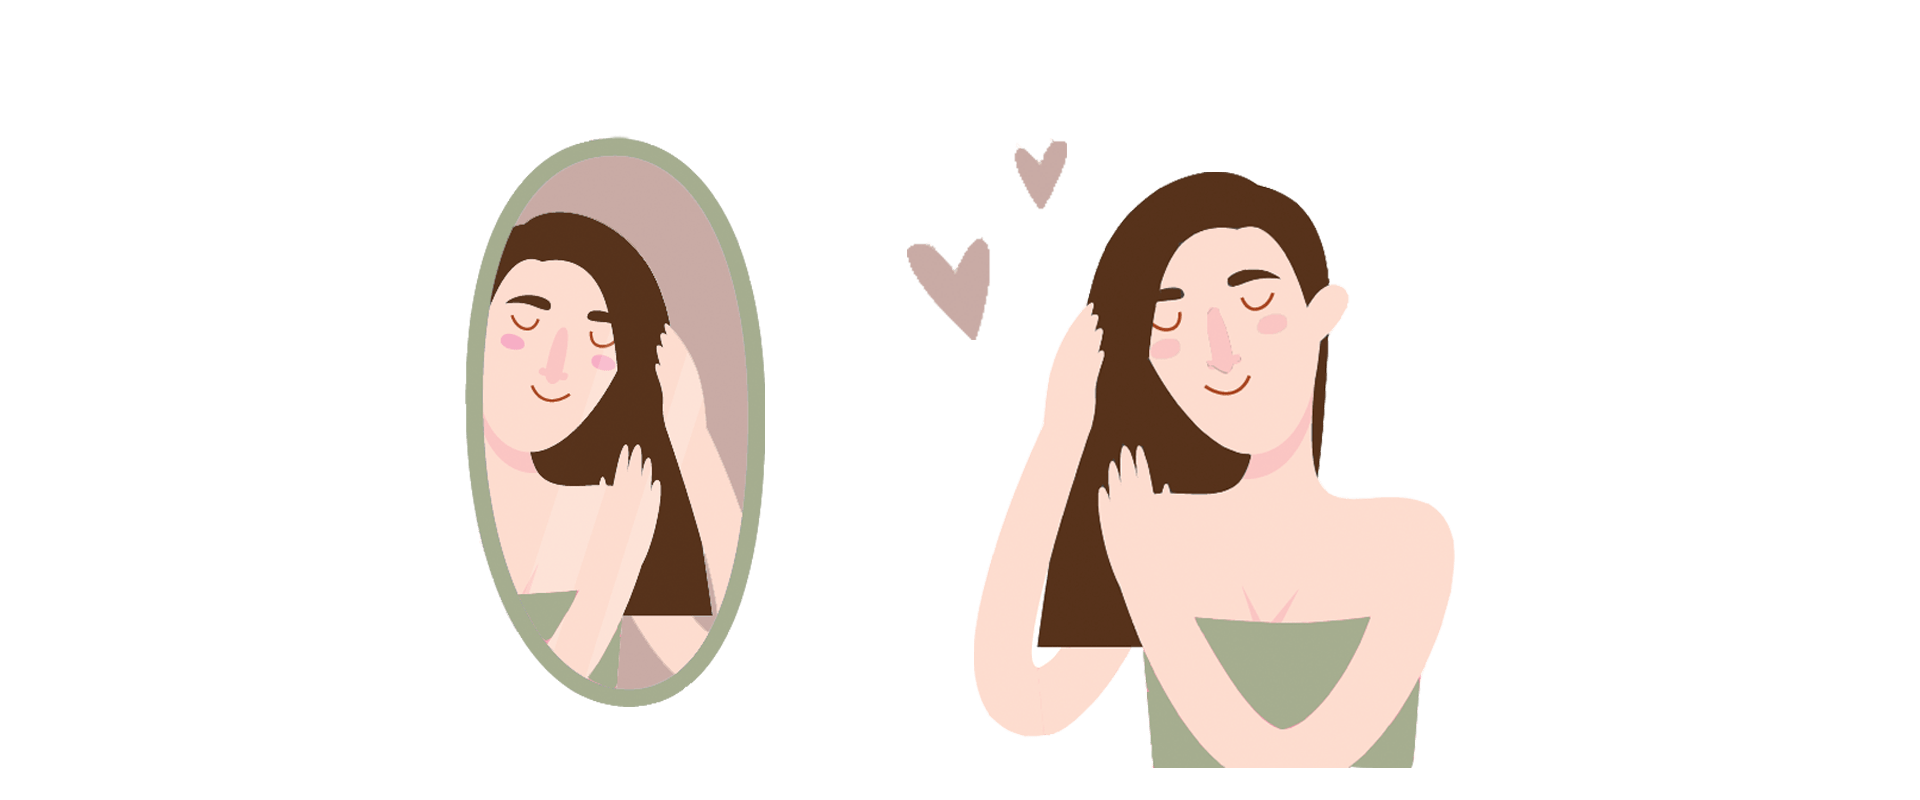 Illustration of a woman taking care of her hair